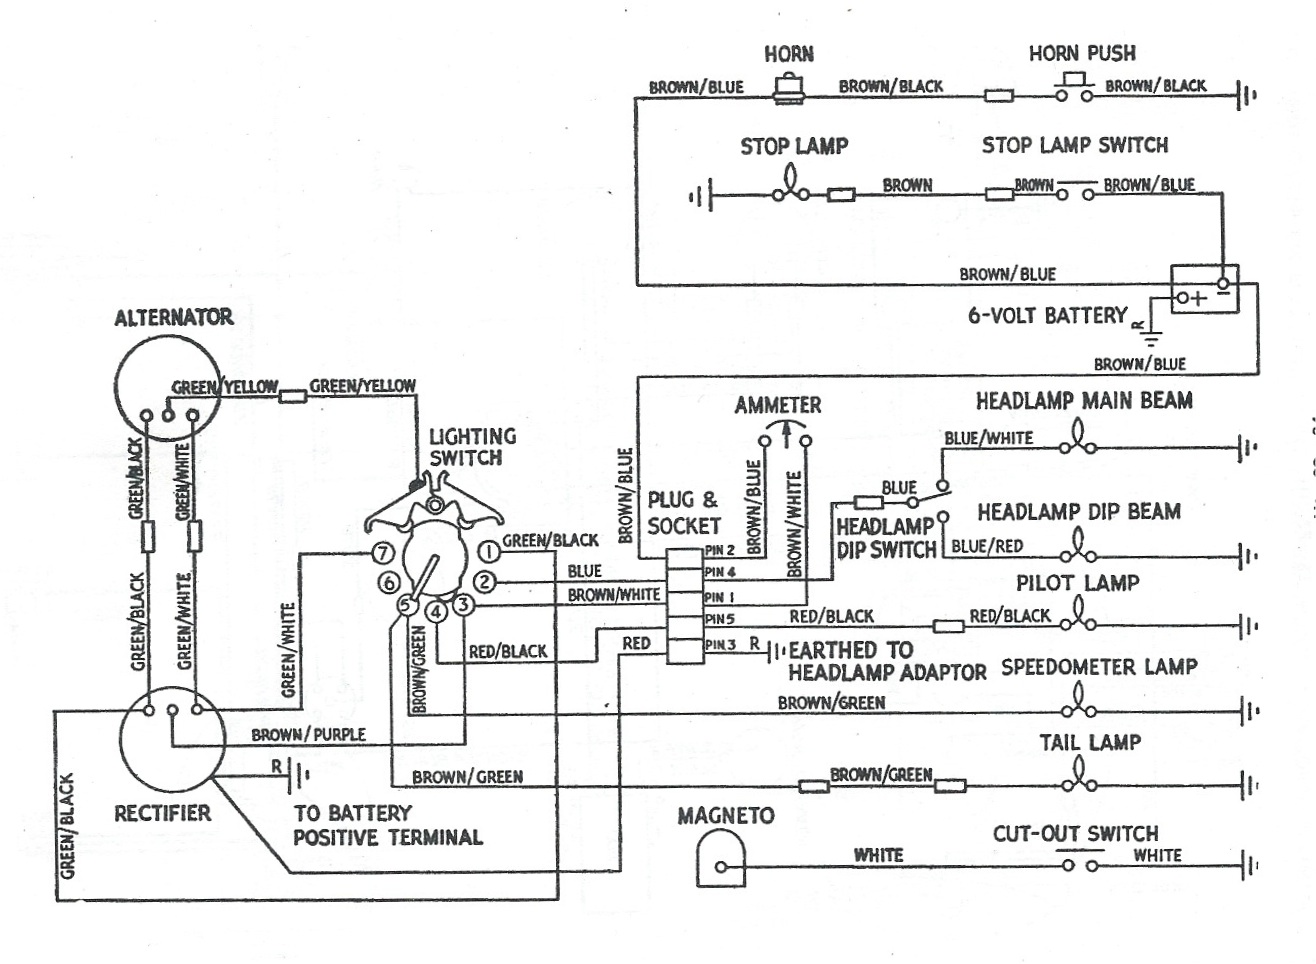 Bourget Wiring Diagram Schematic Electronic 420a Eclipse Alternator Bsa B44 Diagramsrhbesodiaddonsco At